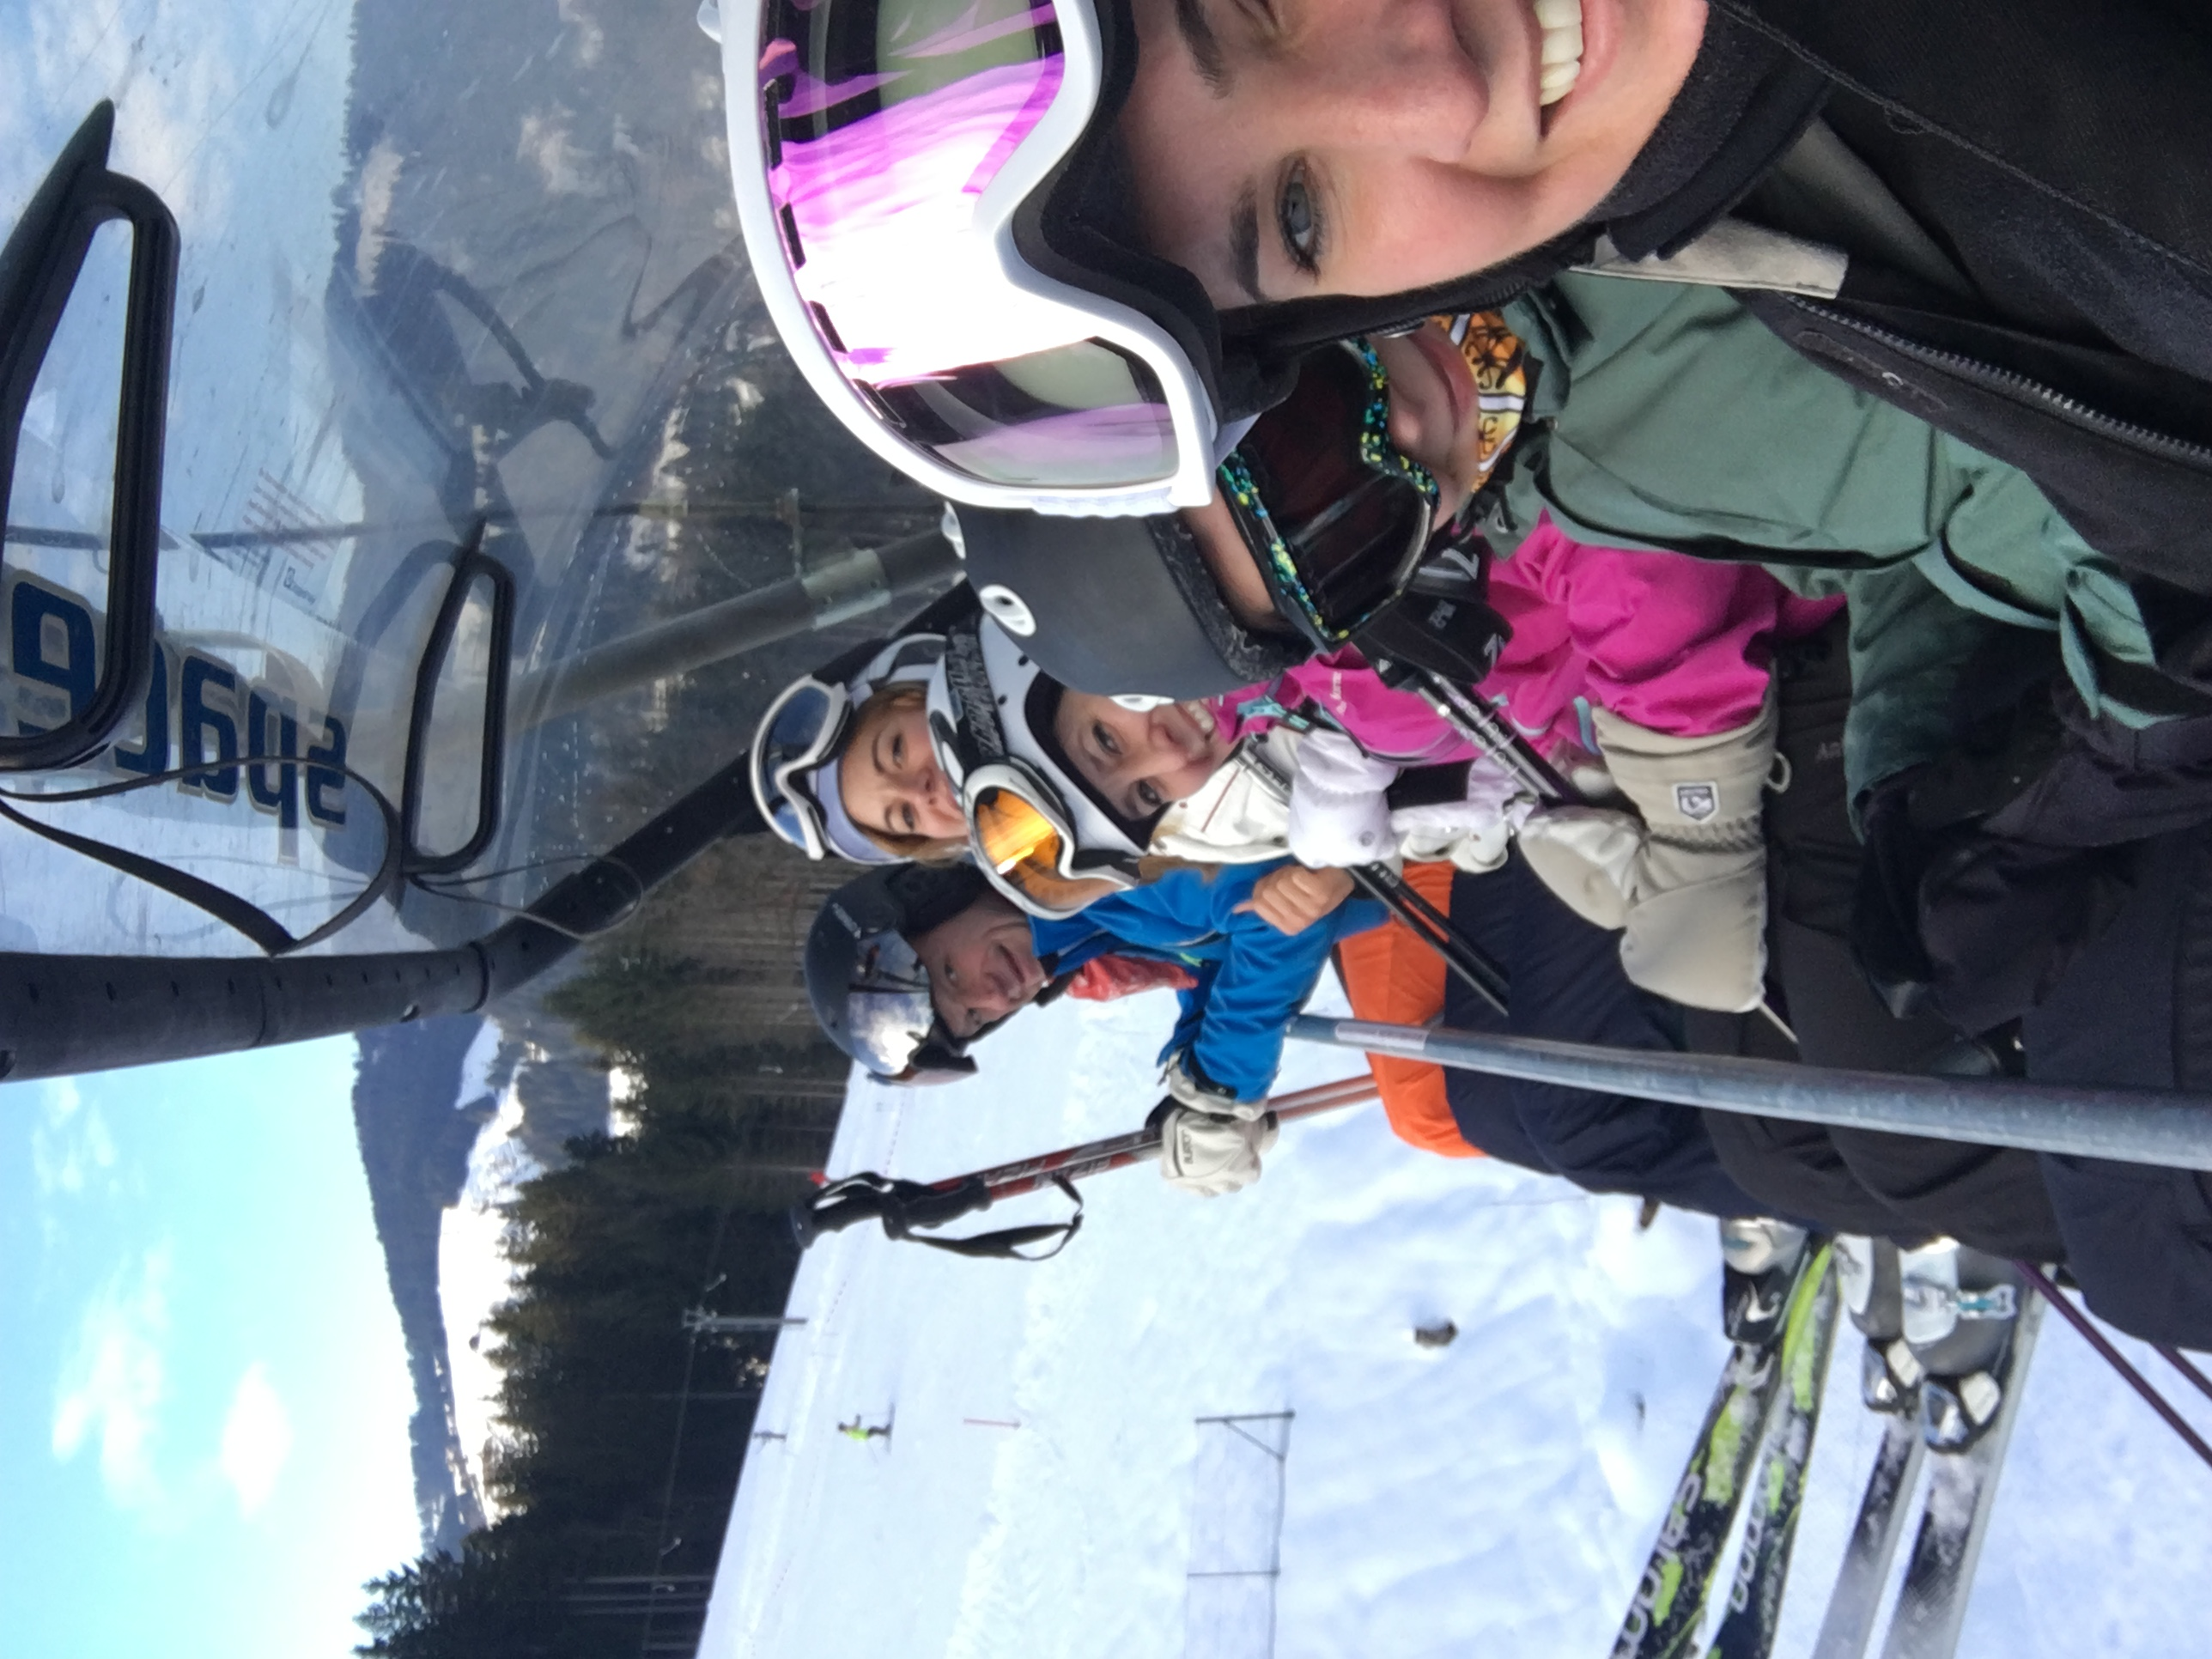 Kate Price on a ski trip with friends